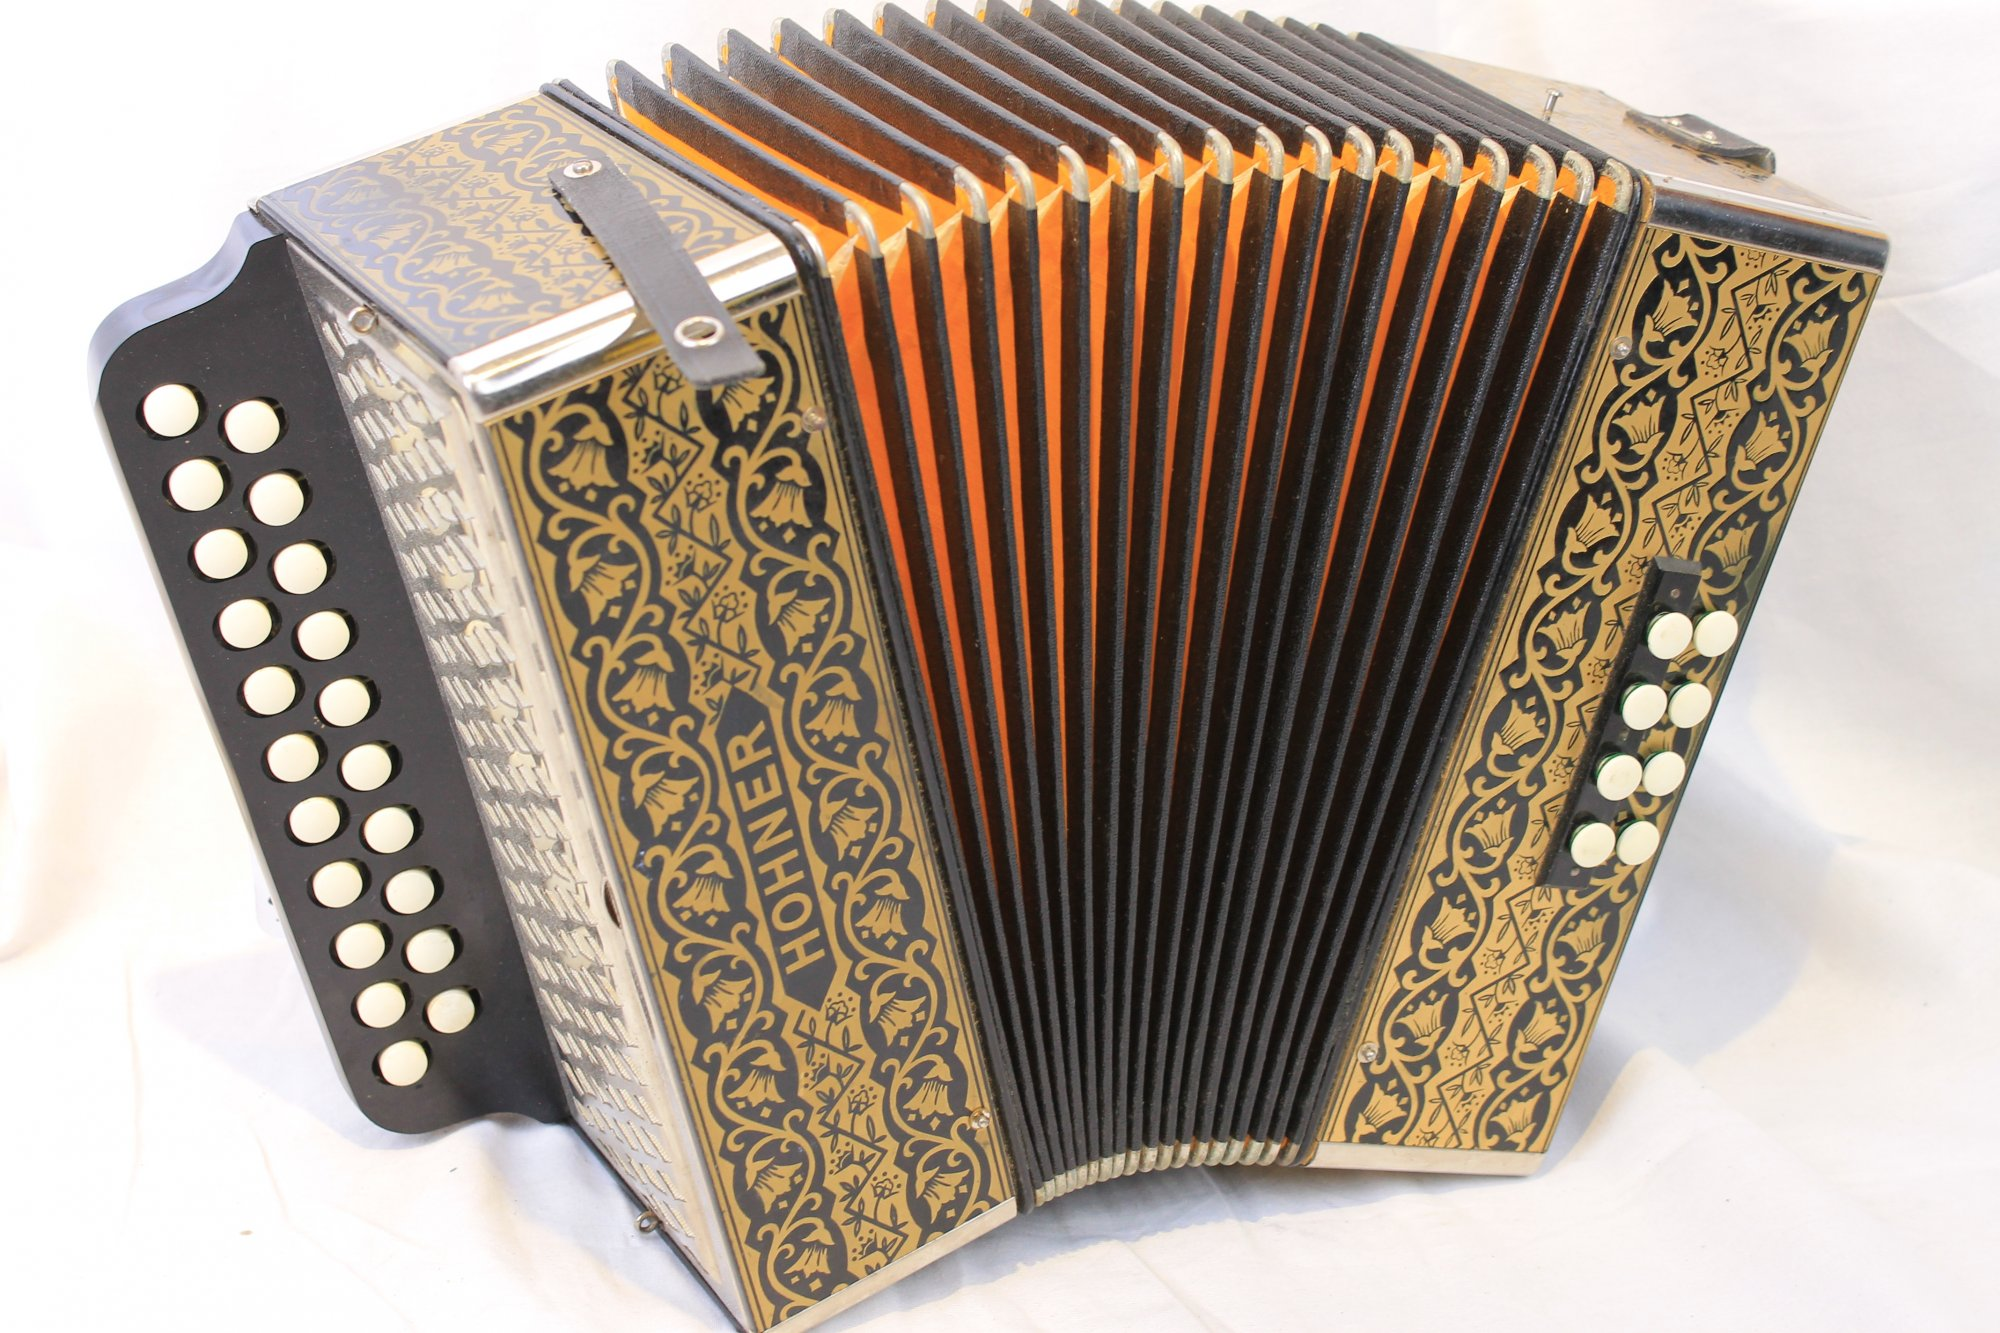 2889 - Hohner Pokerwork HA-2815 Diatonic Button Accordion CF 21 8